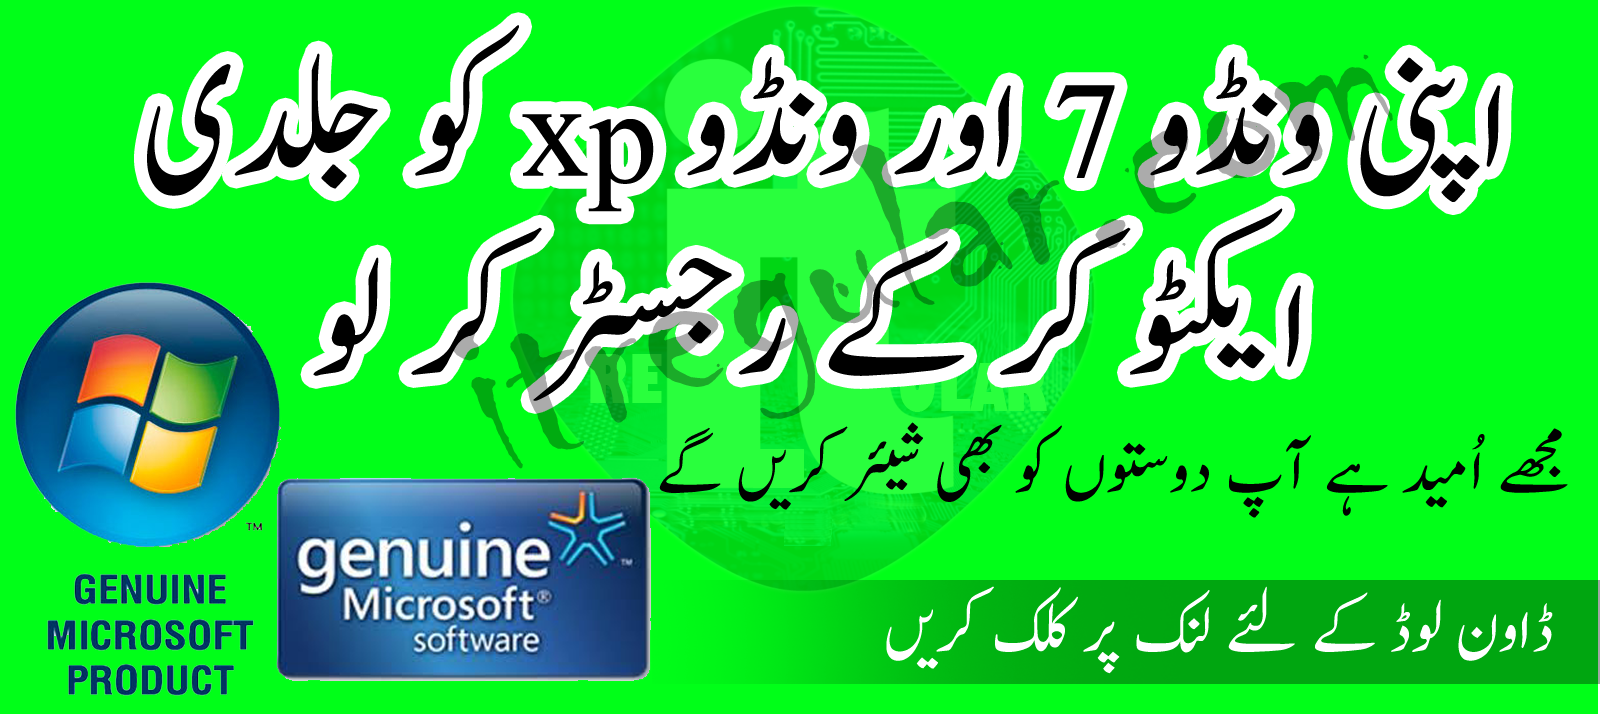 download for windows 7 download now download for windows xp download ...